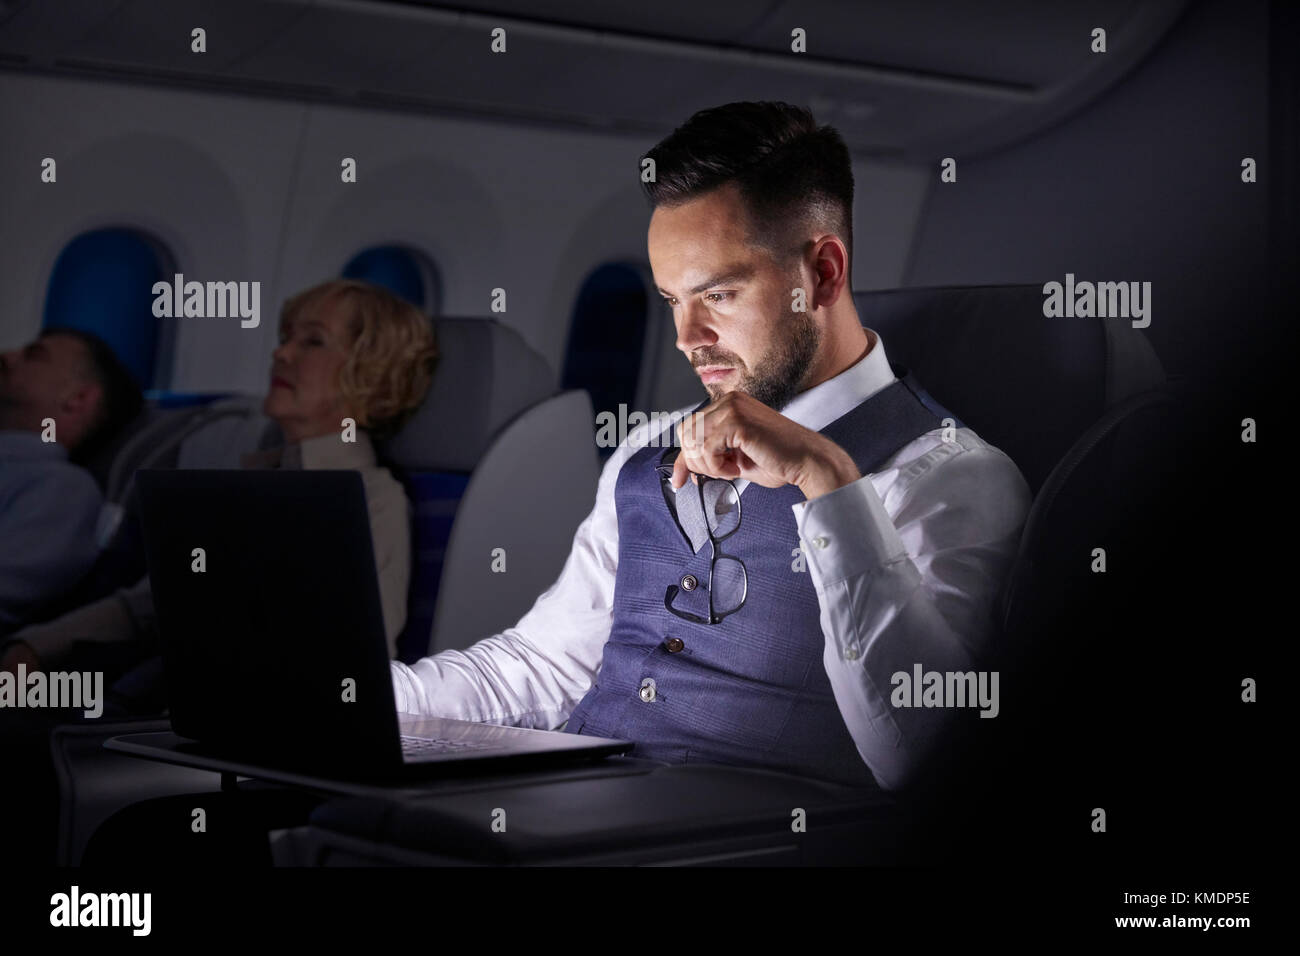 Serious businessman working at laptop on overnight airplane - Stock Image